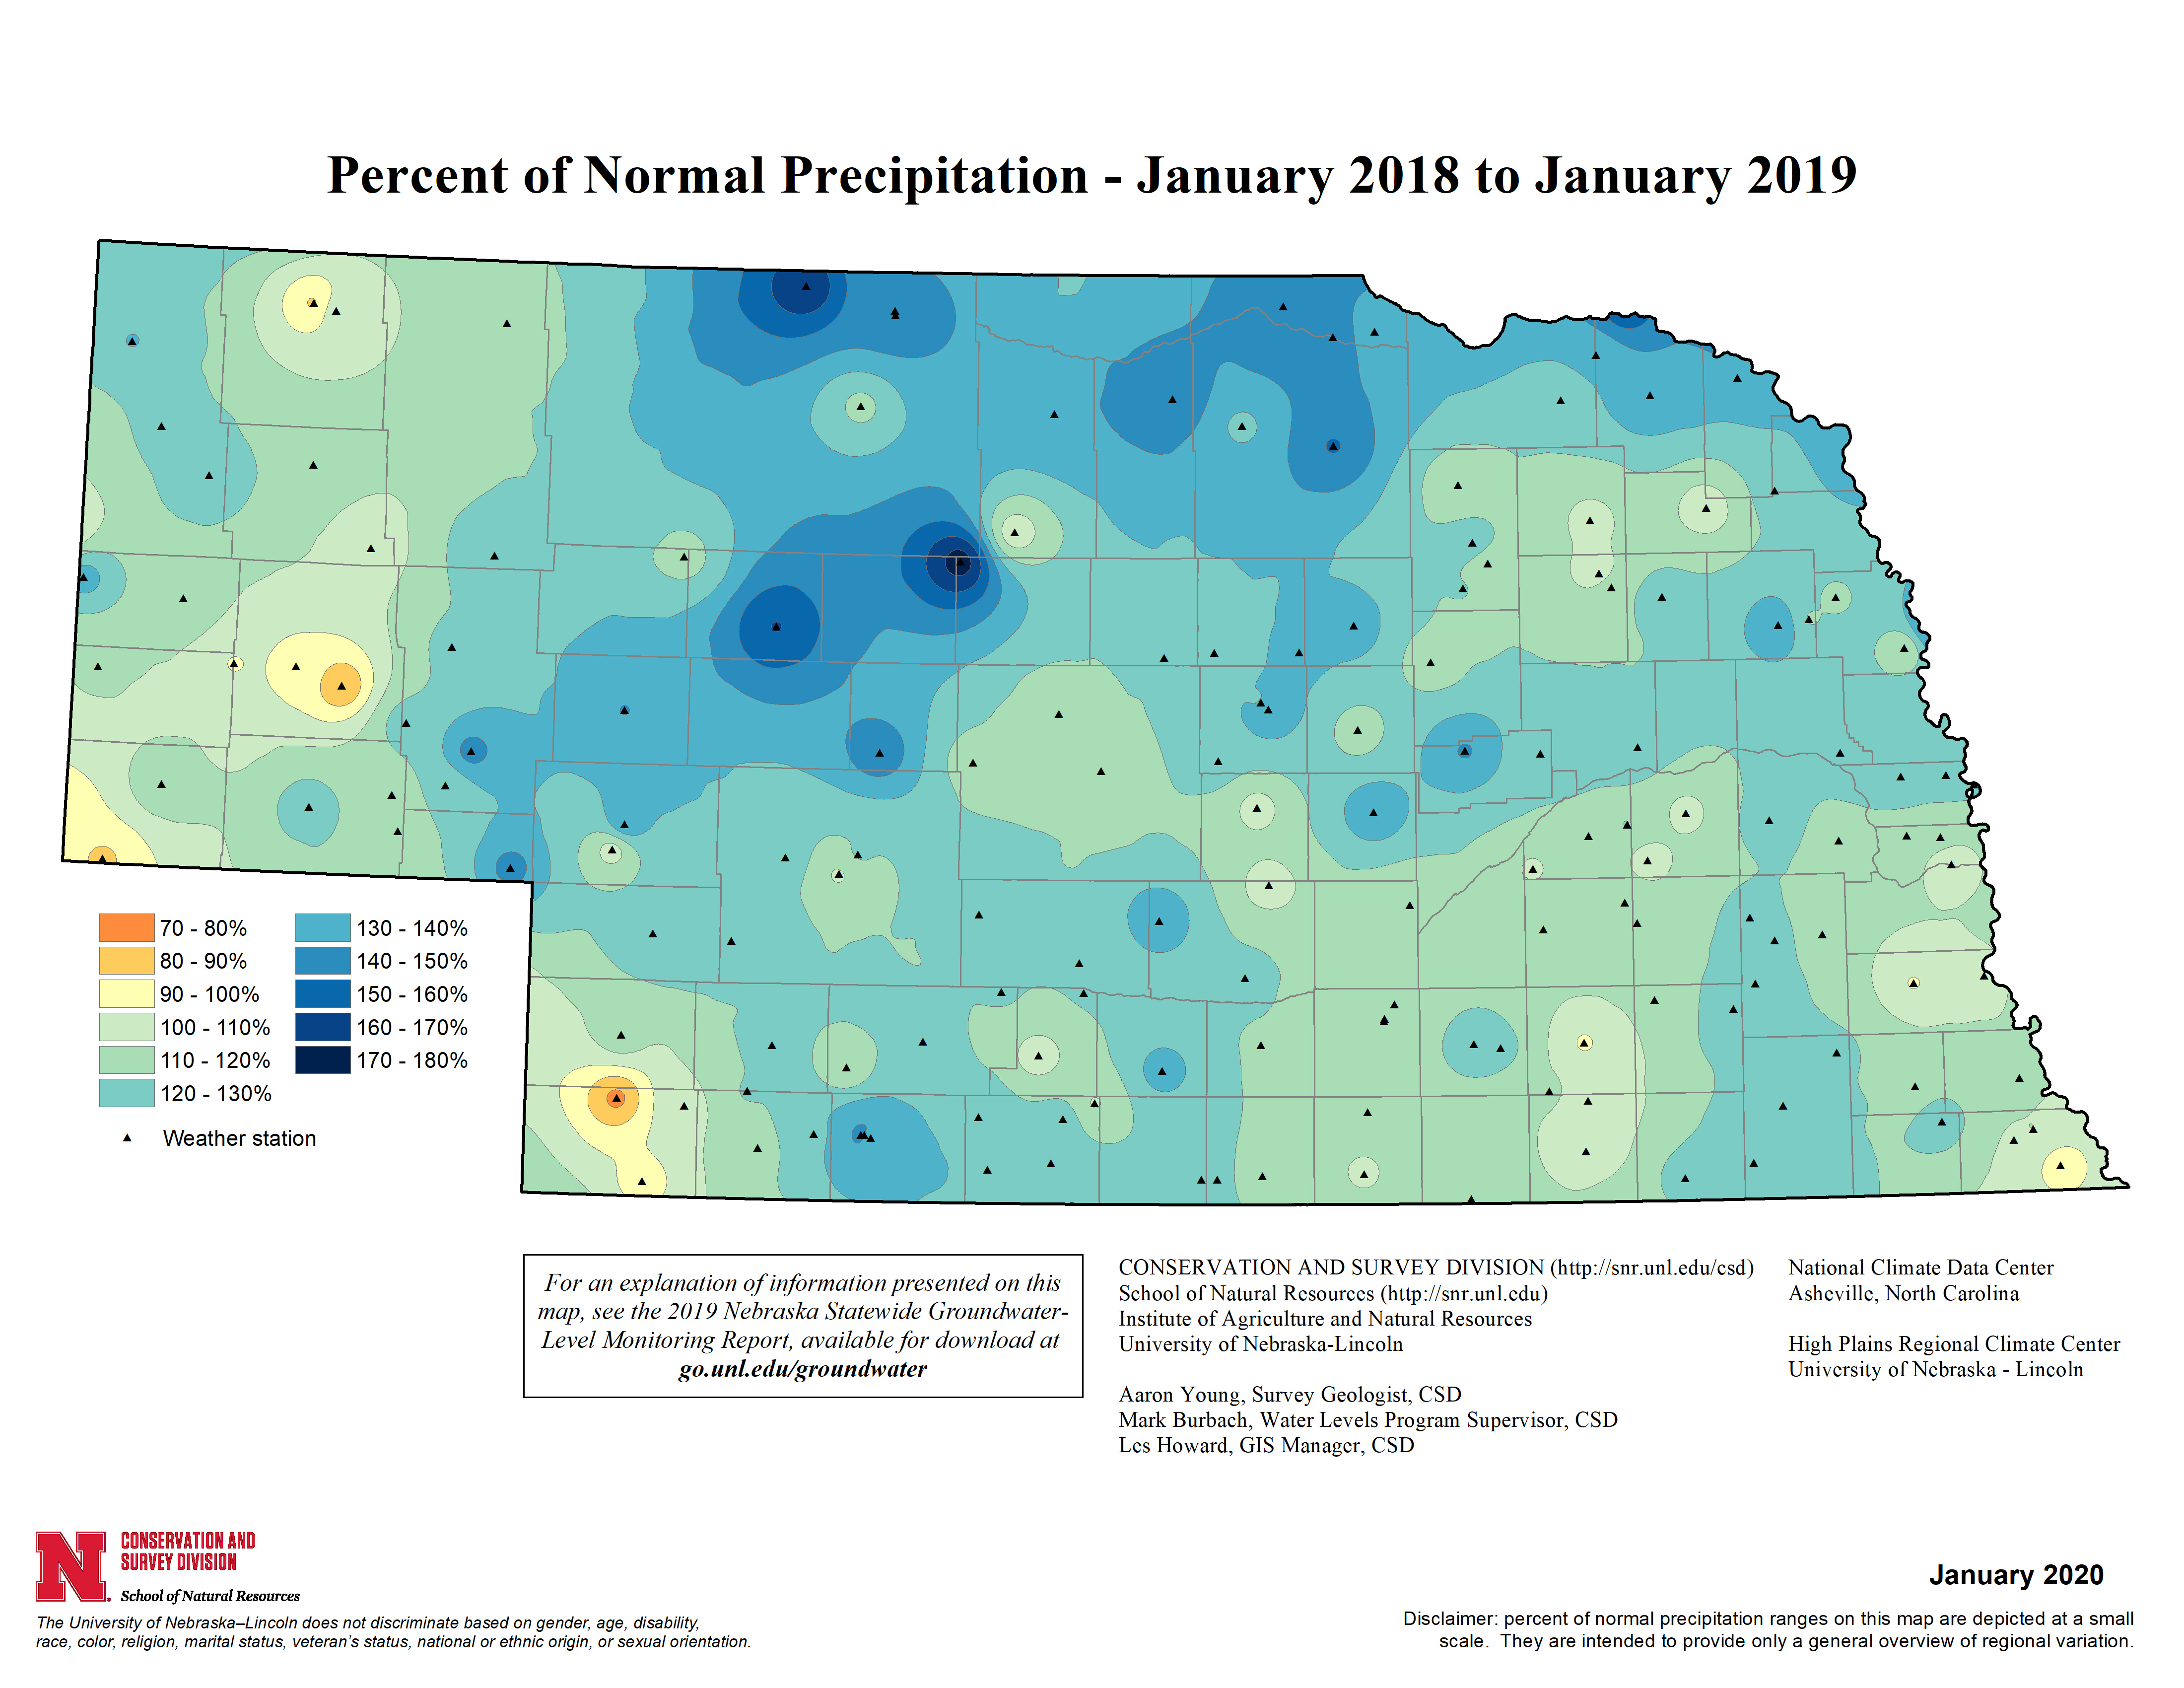 Percent of Normal Precipitation, January 2018 - January 2019